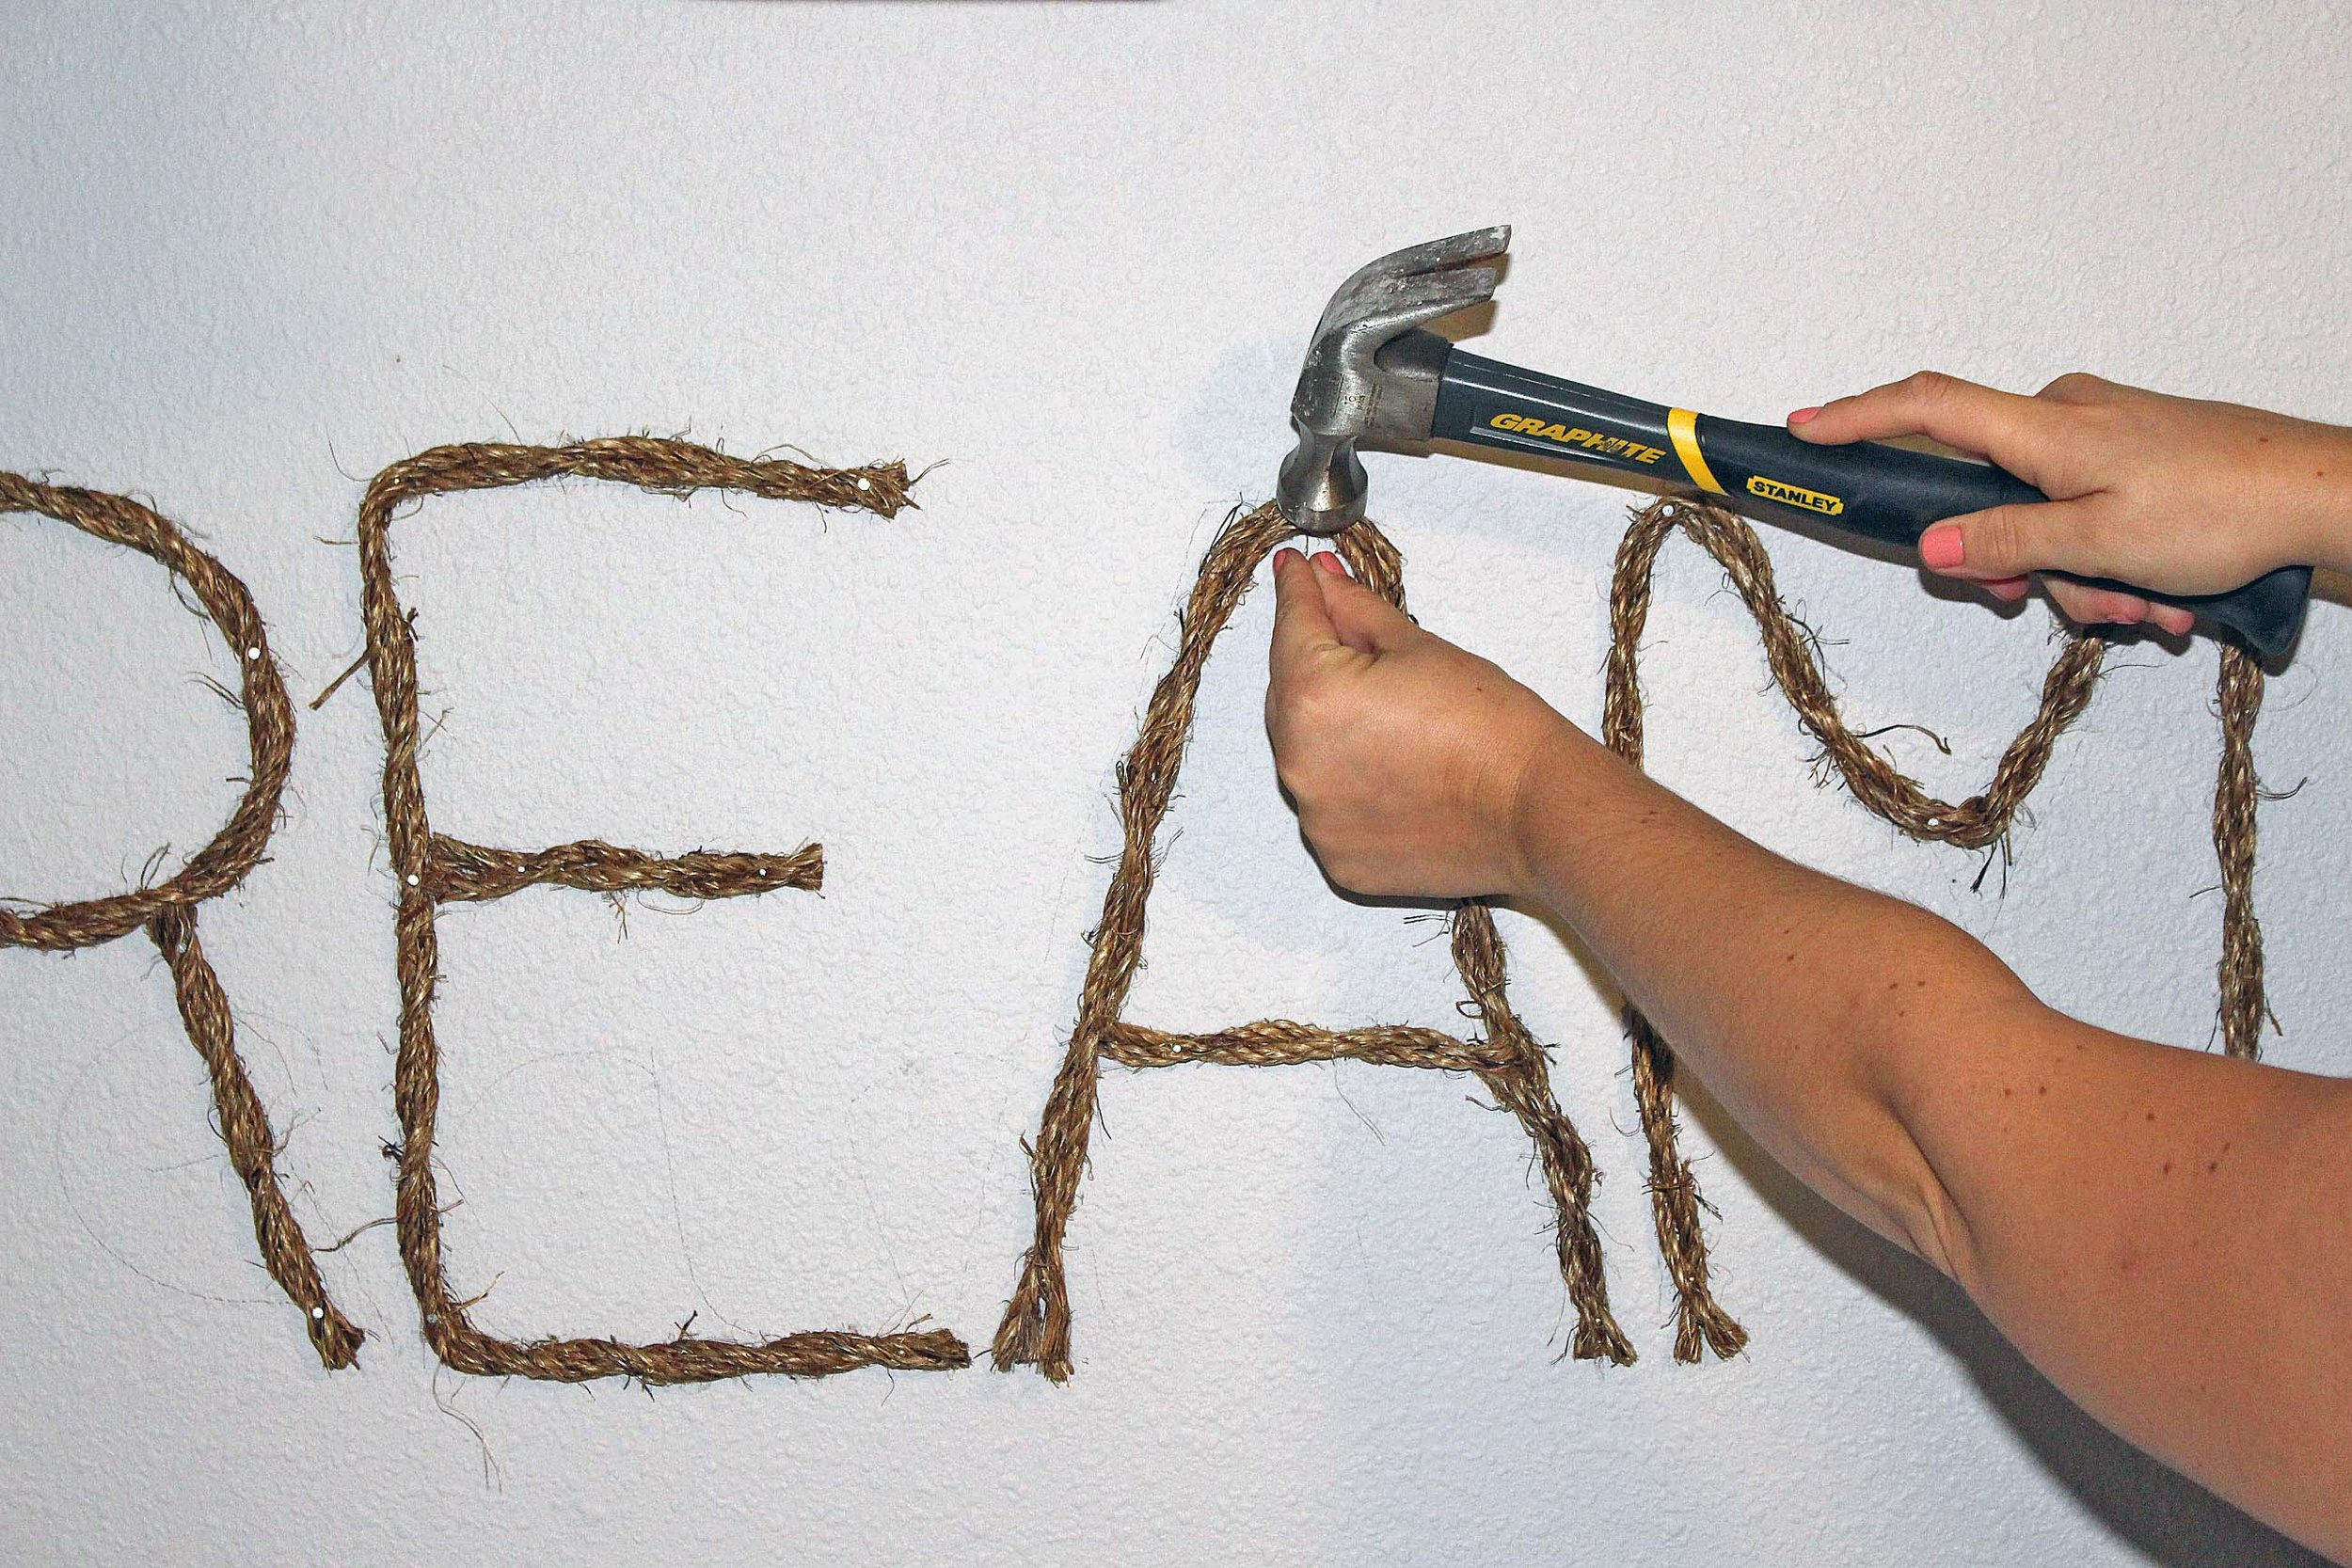 Creating a DIY rope sign for your wall